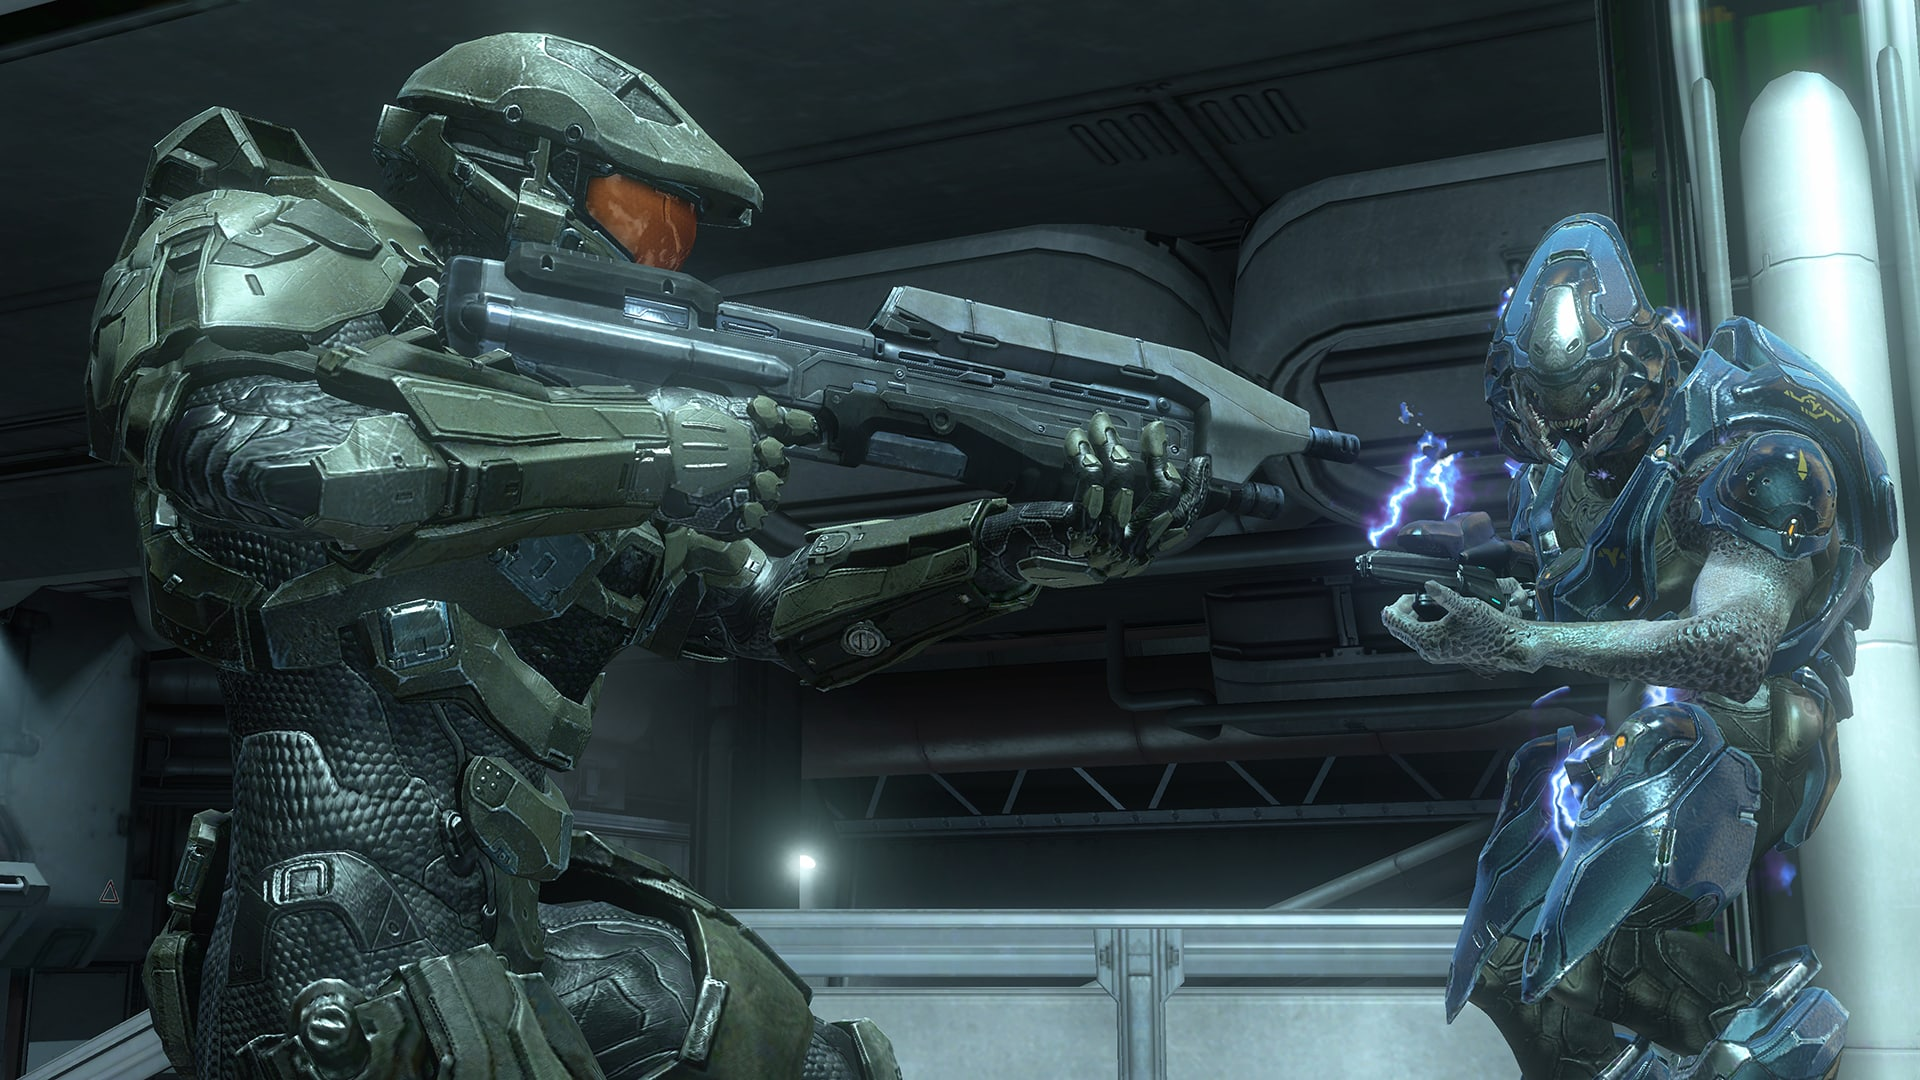 Halo 4 flighting in Master Chief Collection will see new Forge features